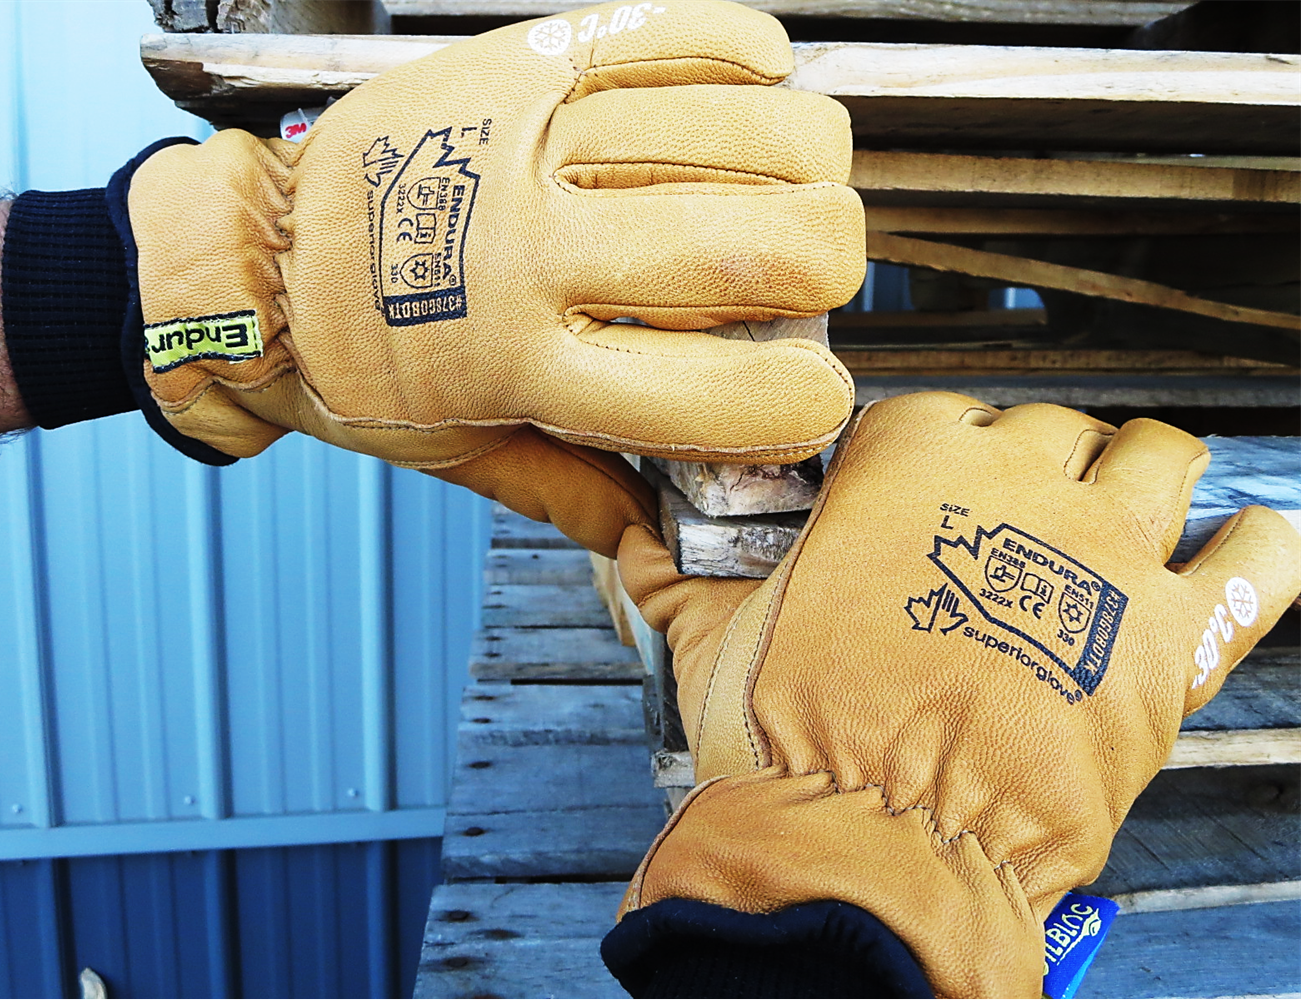 378GOBDTK Superior Glove® Endura® Deluxe Winter Goat-Grain Driver with WaterStop™/Oilbloc™ and Double Weight Thinsulate™ Liner